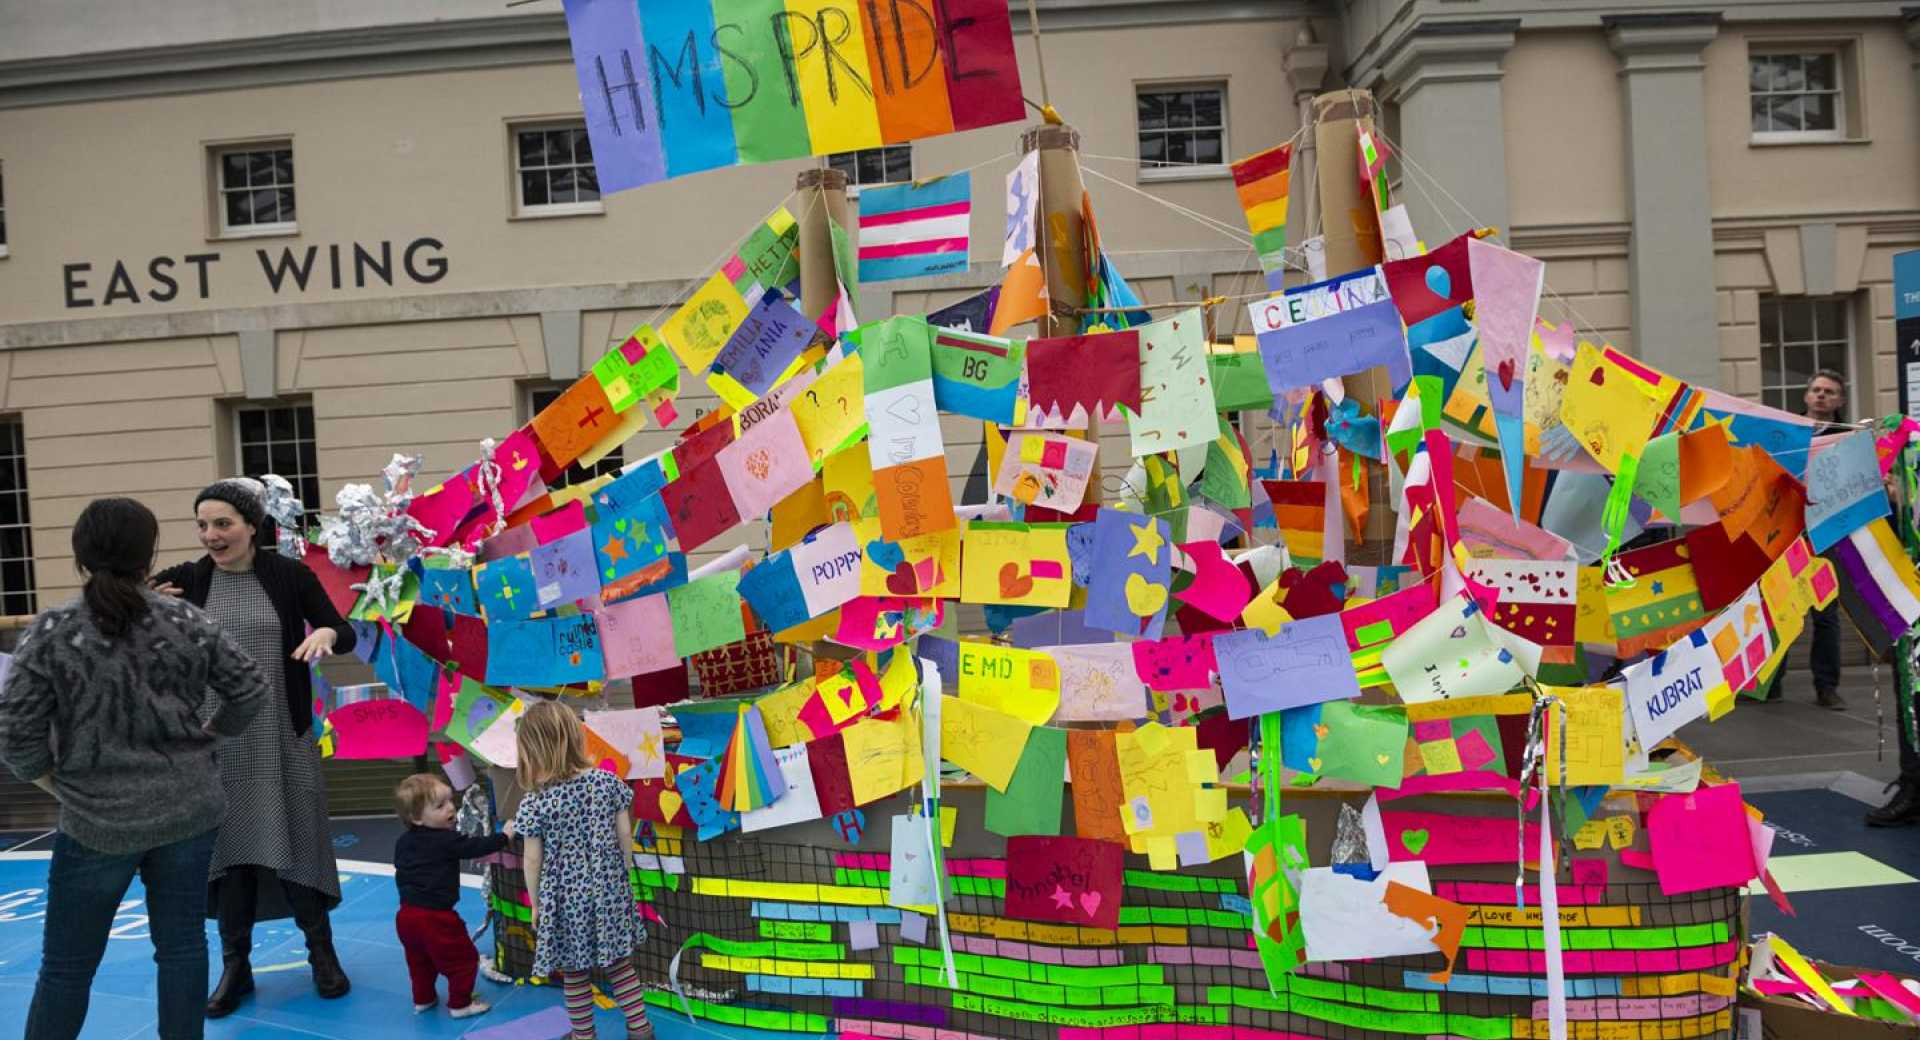 Multicolour boat with artwork and notes pasted on it